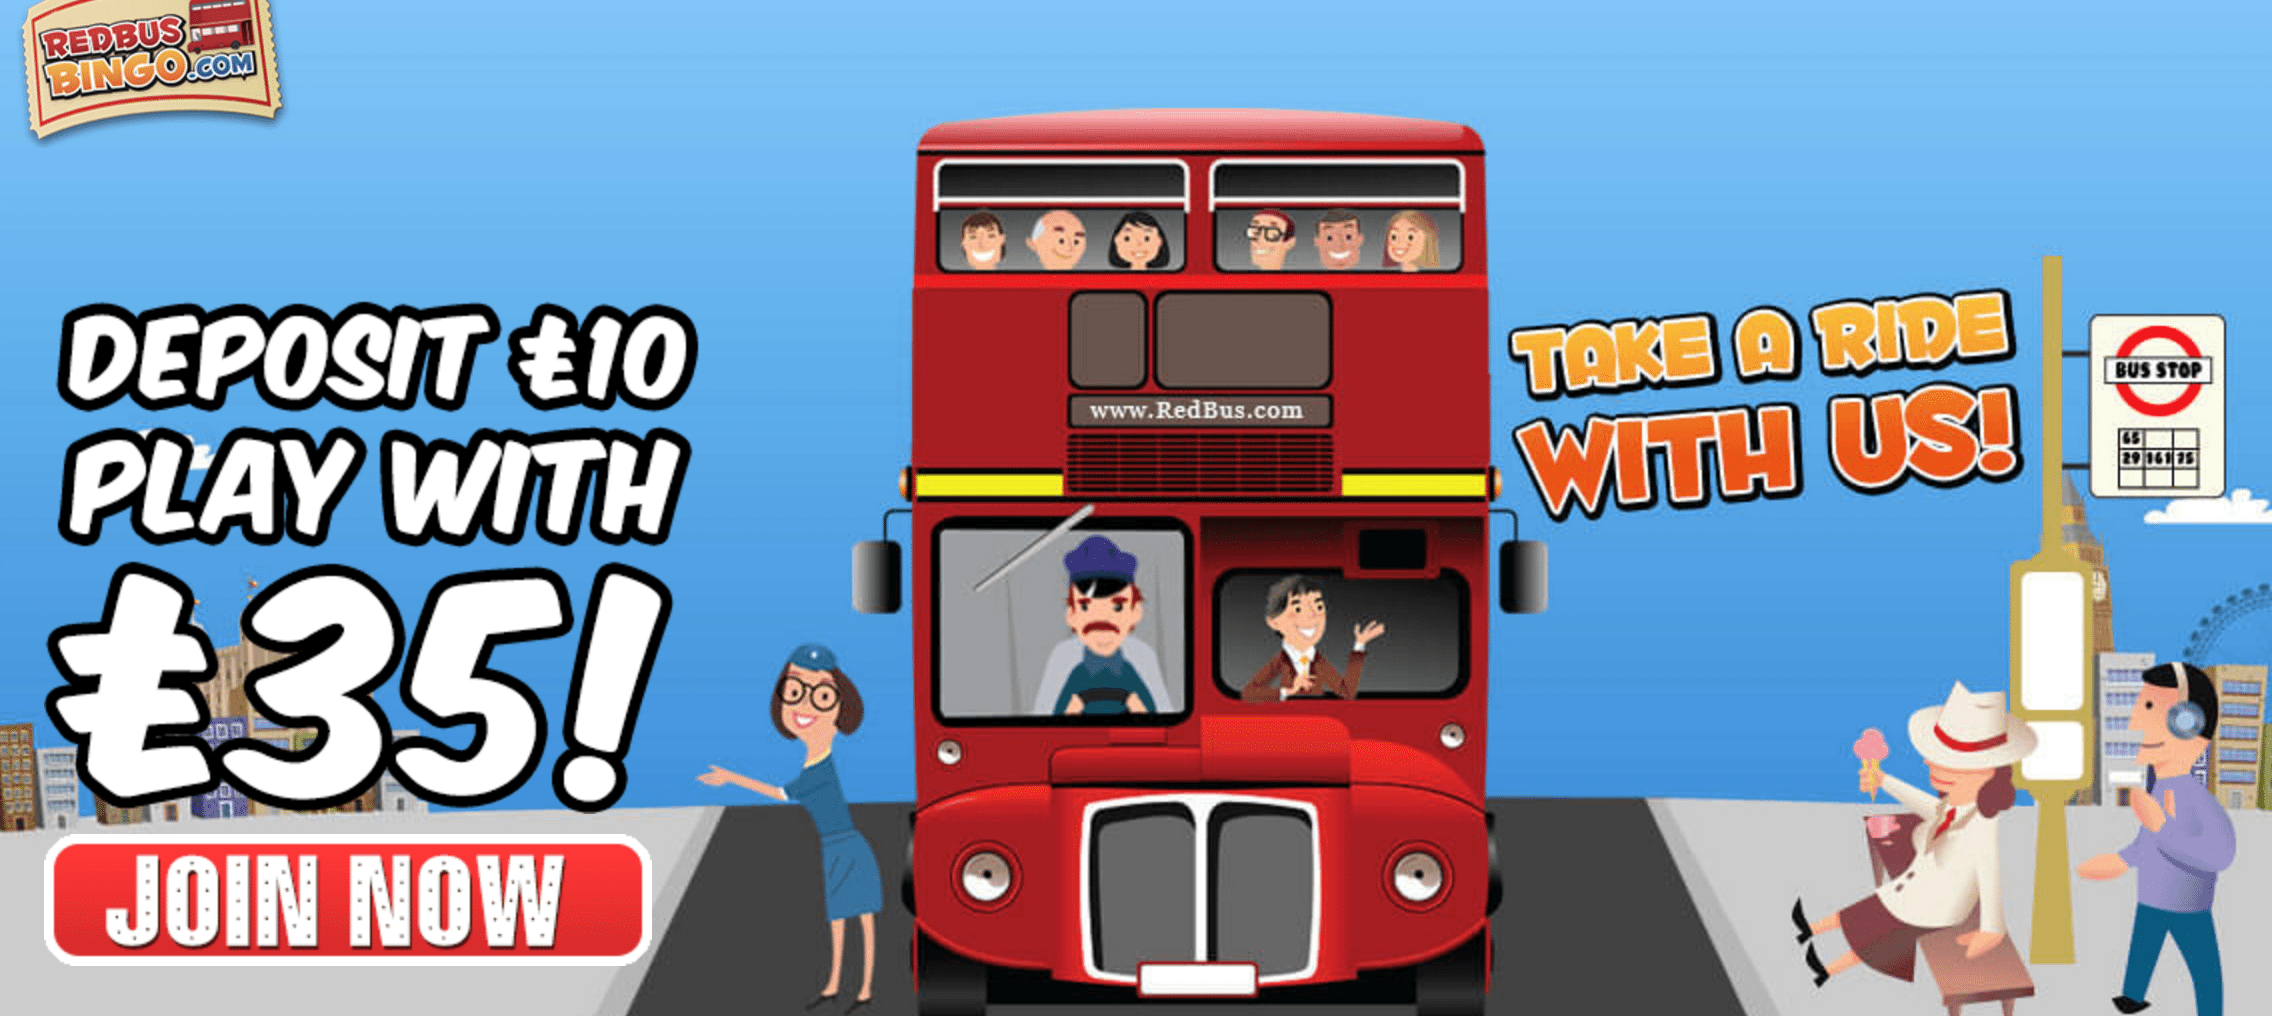 red bus welcome offer